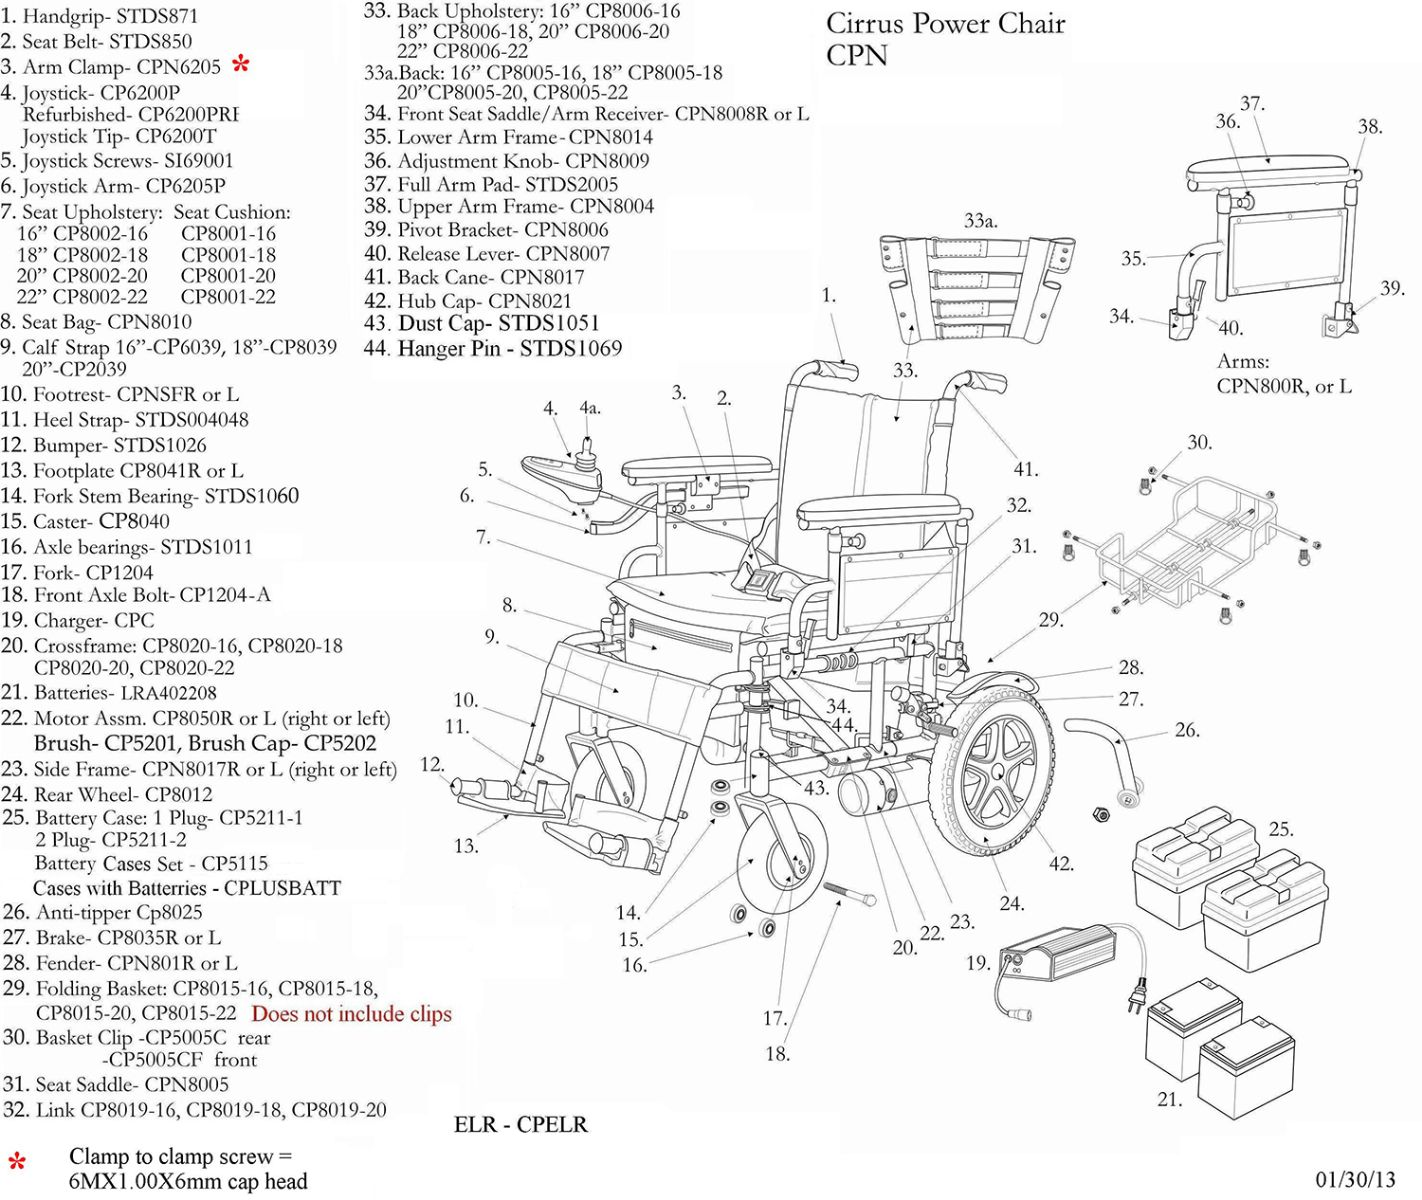 Electric Kick Scooter Battery likewise Power Wheelchair Parts in addition Manuals in addition Electric Tricycles For Sale in addition Cirrus Plus Ec Power Chair Replacement Parts 41673. on electric mobility wiring diagram